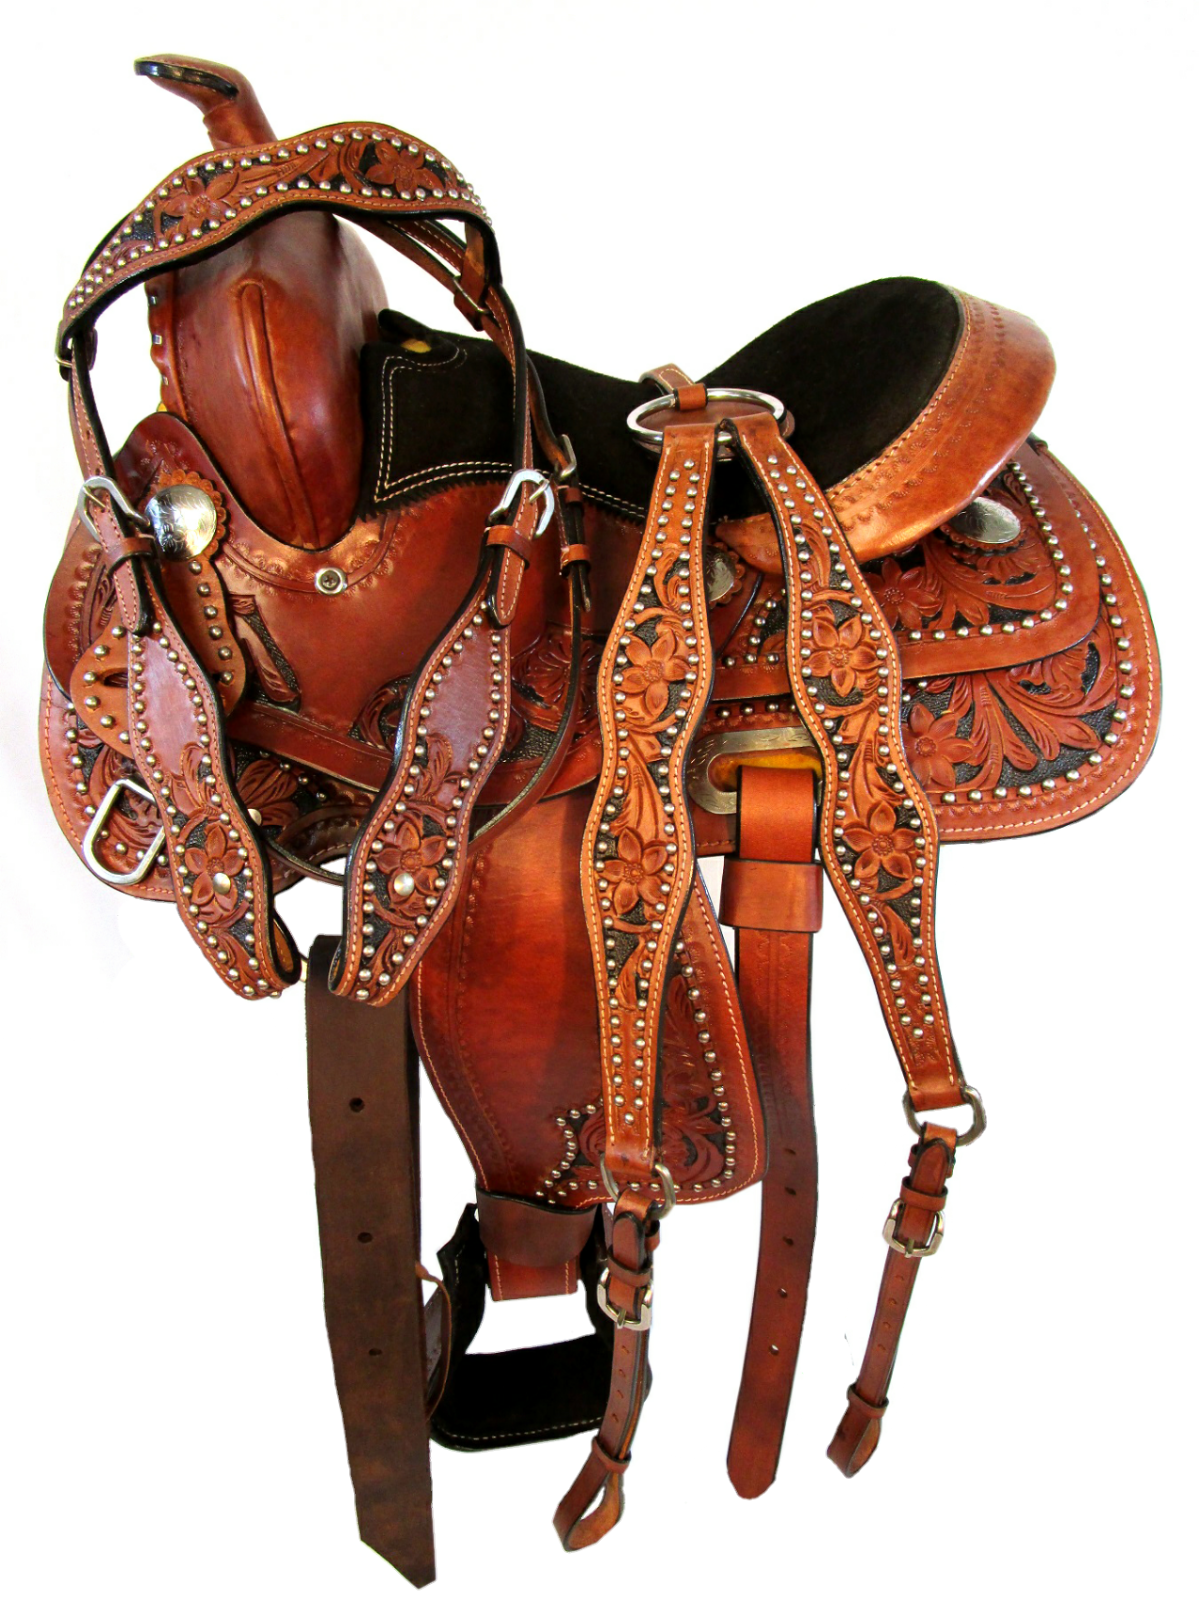 12 13 Silber STUDDED TRAIL SHOW FLORAL TOOLED MINI YOUTH KIDS WESTERN SADDLE